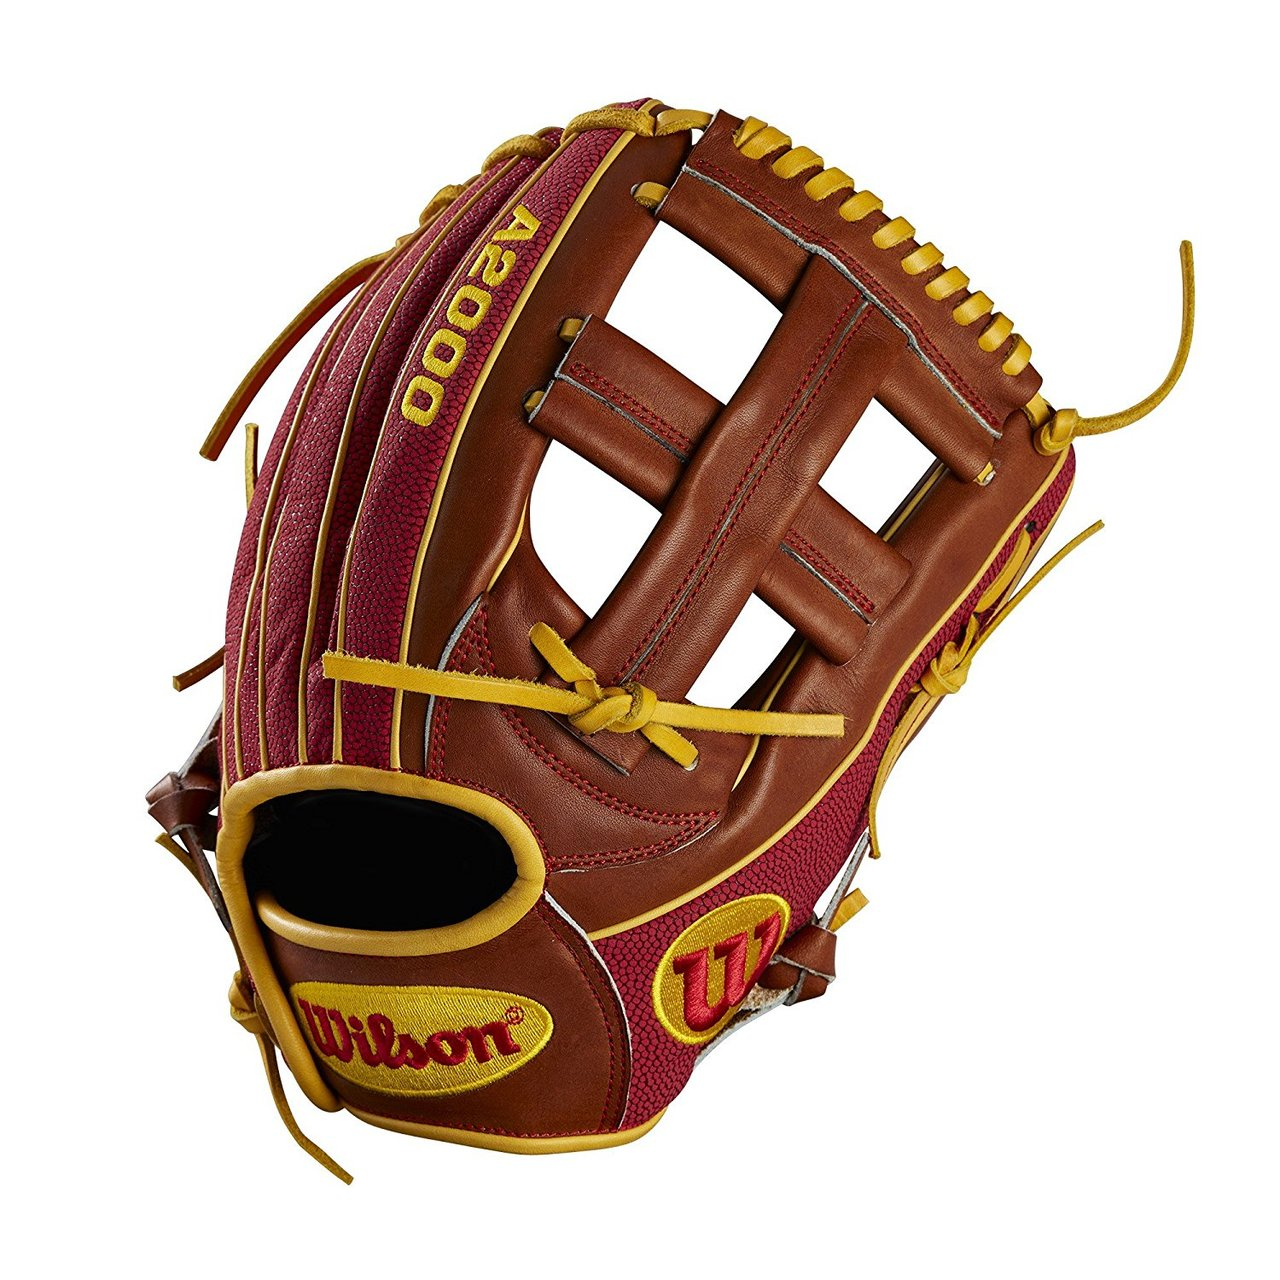 wilson-2018-a2000-dp15-gm-infield-baseball-glove-right-hand-throw-11-75 WTA20RB18DP15GM-RightHandThrow Wilson 887768614676 11.75 infield model Cross web - game WTA20RB18DP15GM for Dustin pedroia